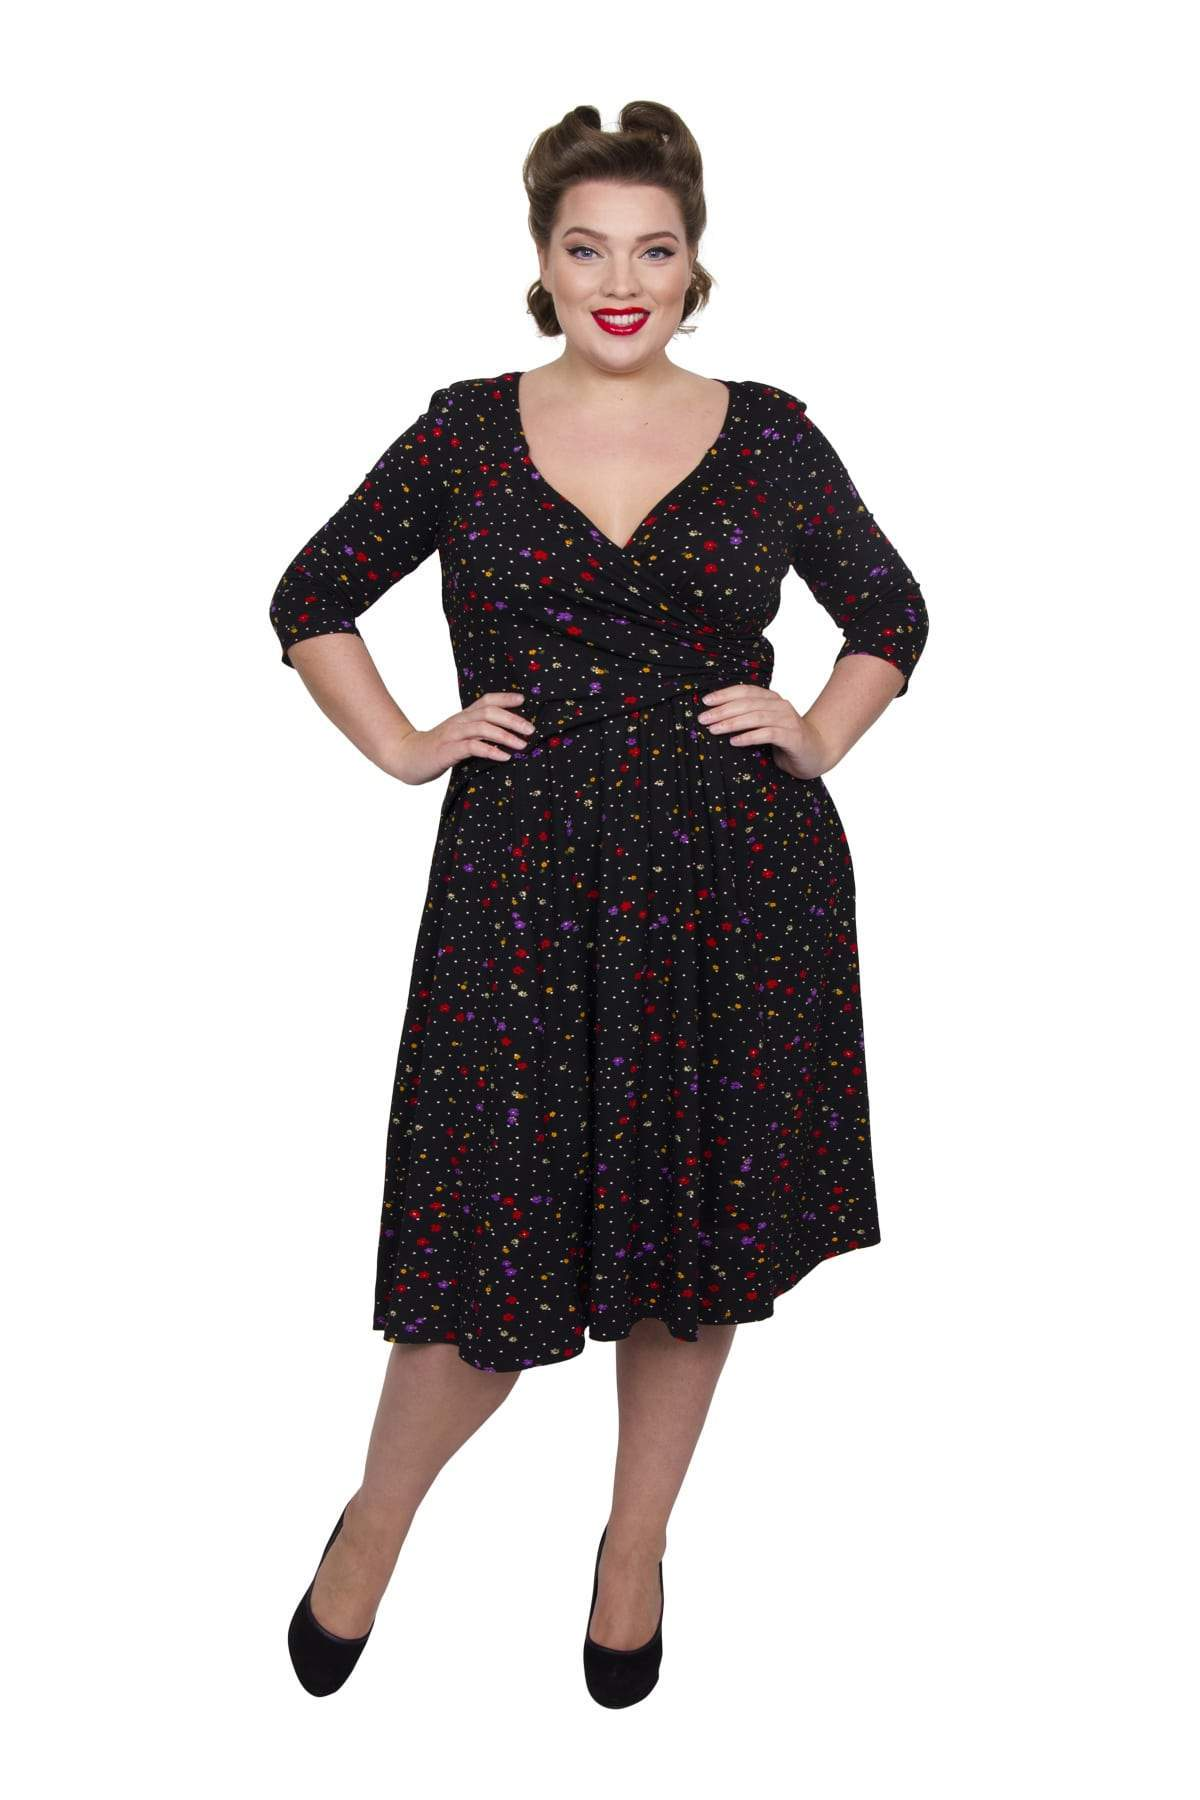 1940s Plus Size Fashion: Style Advice from 1940s to Today Ditsy Floral Wrap Jersey Dress - BLKBRGDAM  14 �60.00 AT vintagedancer.com